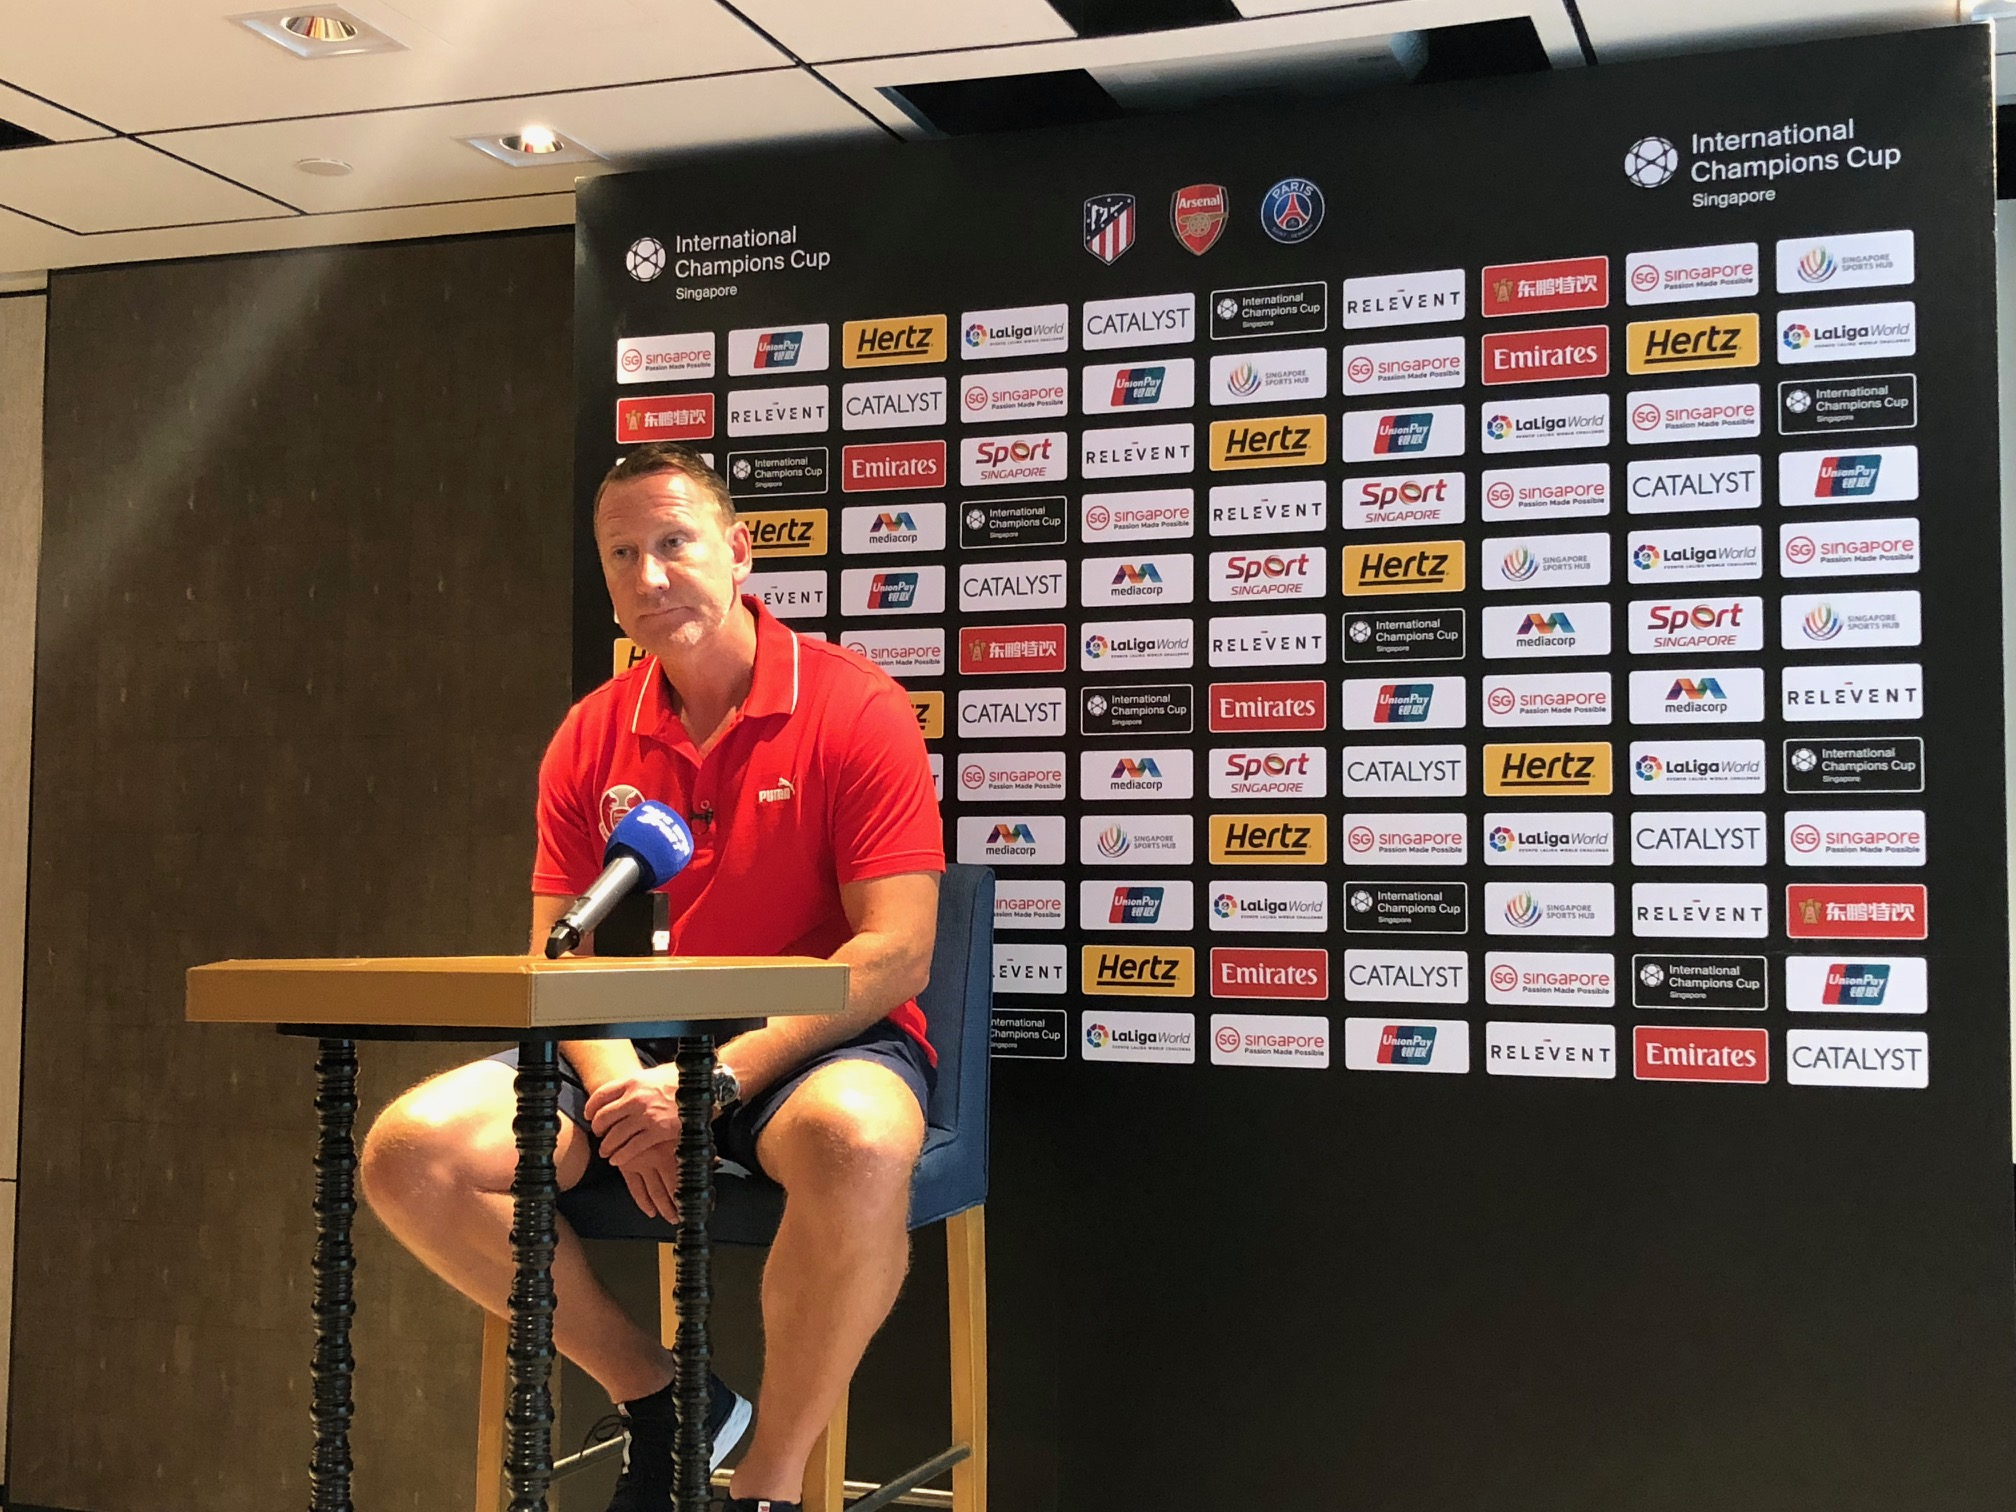 ICC Singapore: Former Arsenal Player Ray Parlour